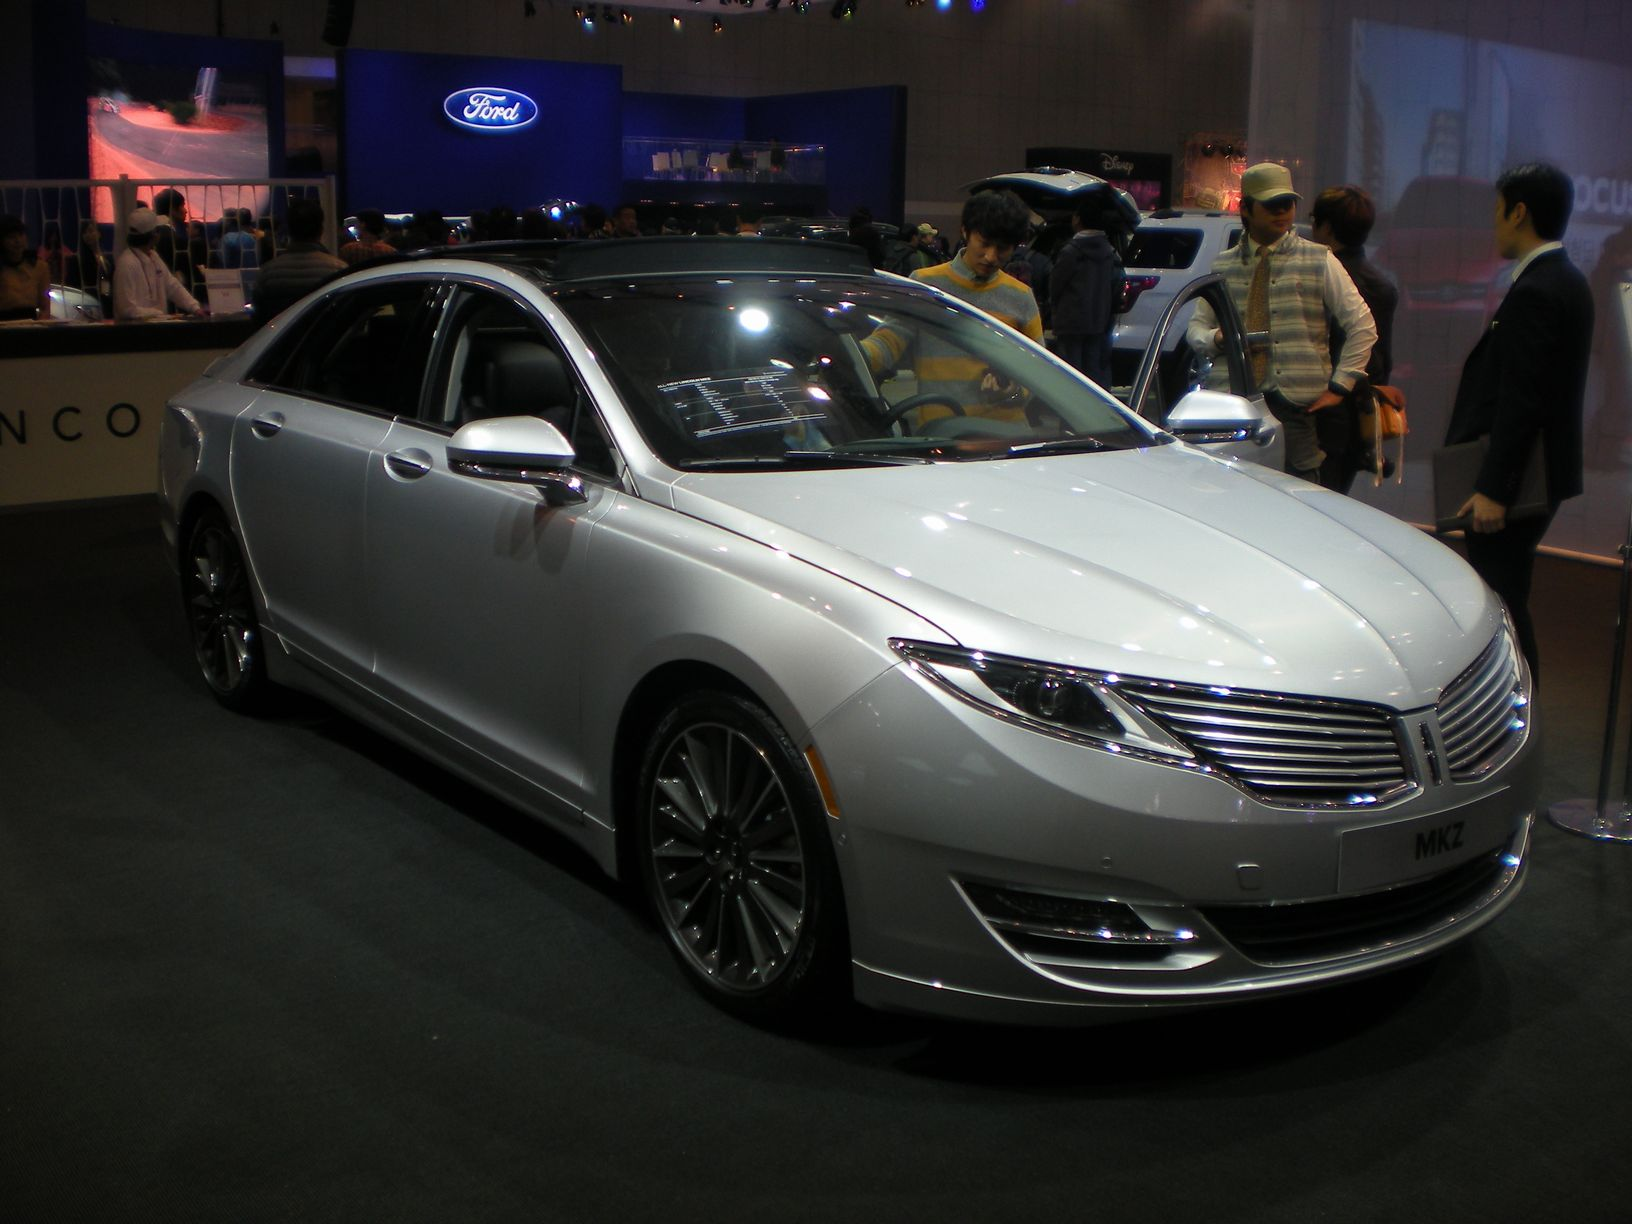 recalled due lincoln mkz m faulty hybrid to news gearbox